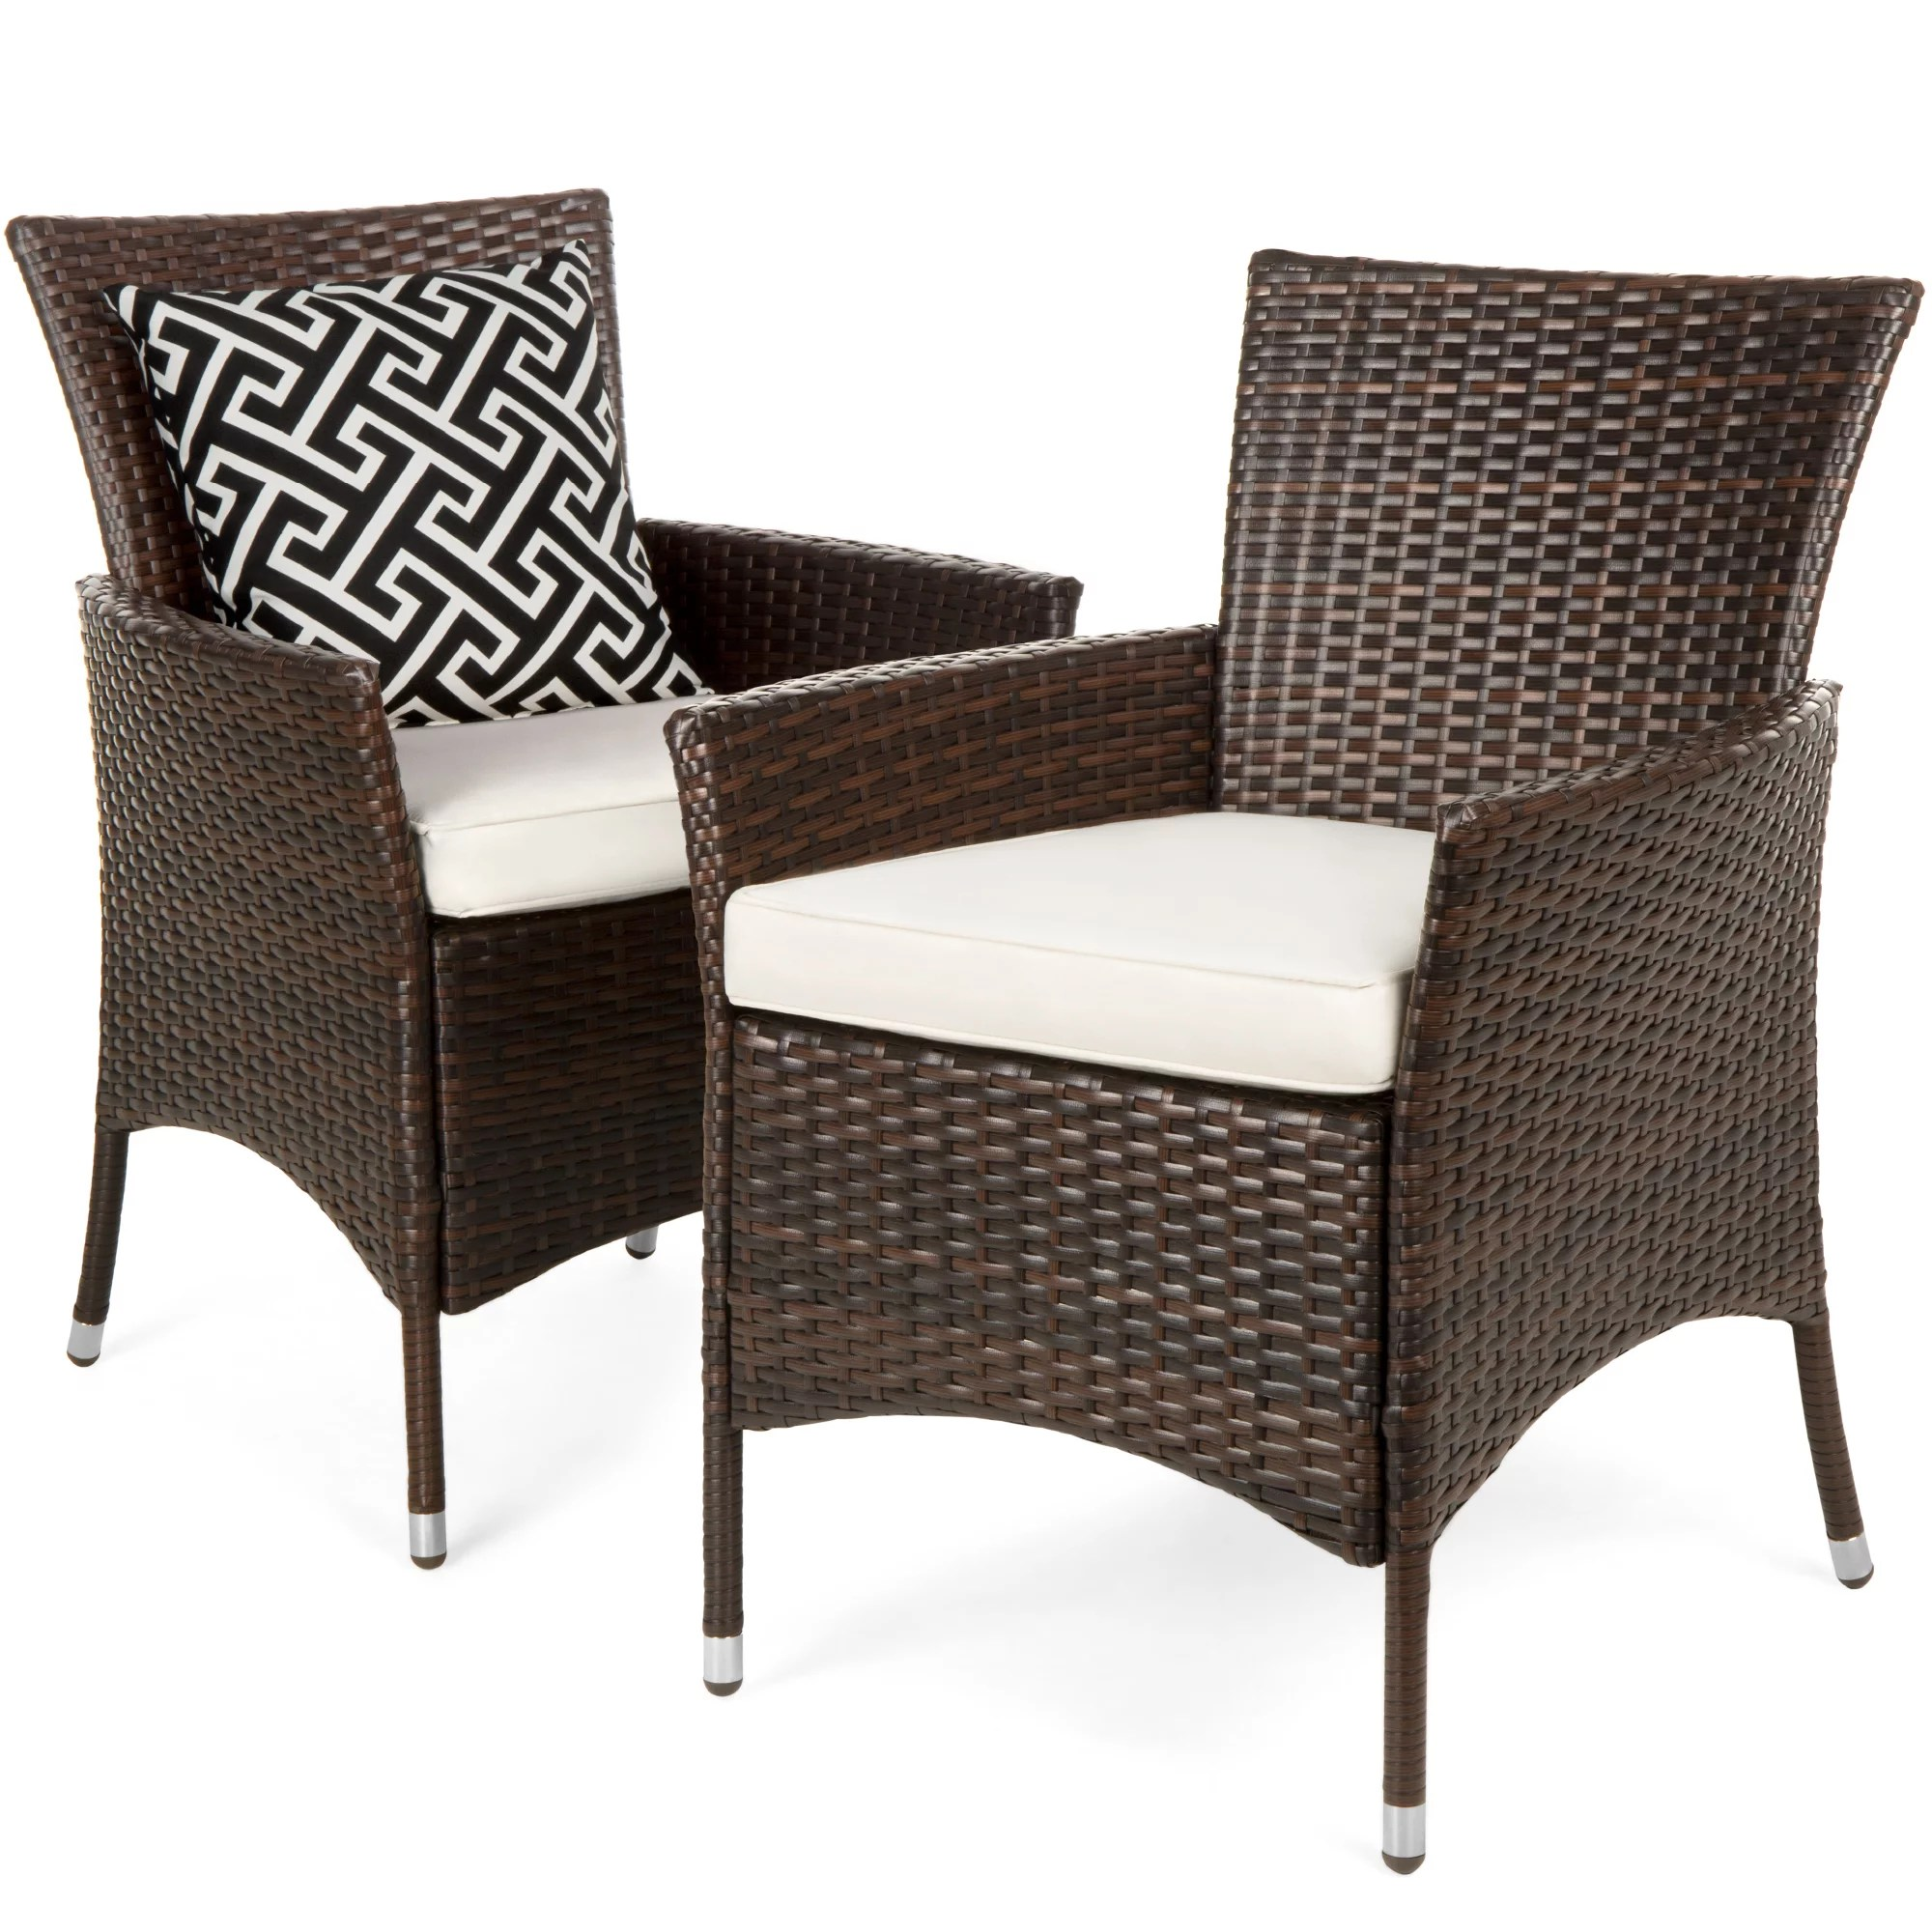 best choice products set of 2 modern contemporary wicker patio furniture dining chairs in brown w water resistant cushions